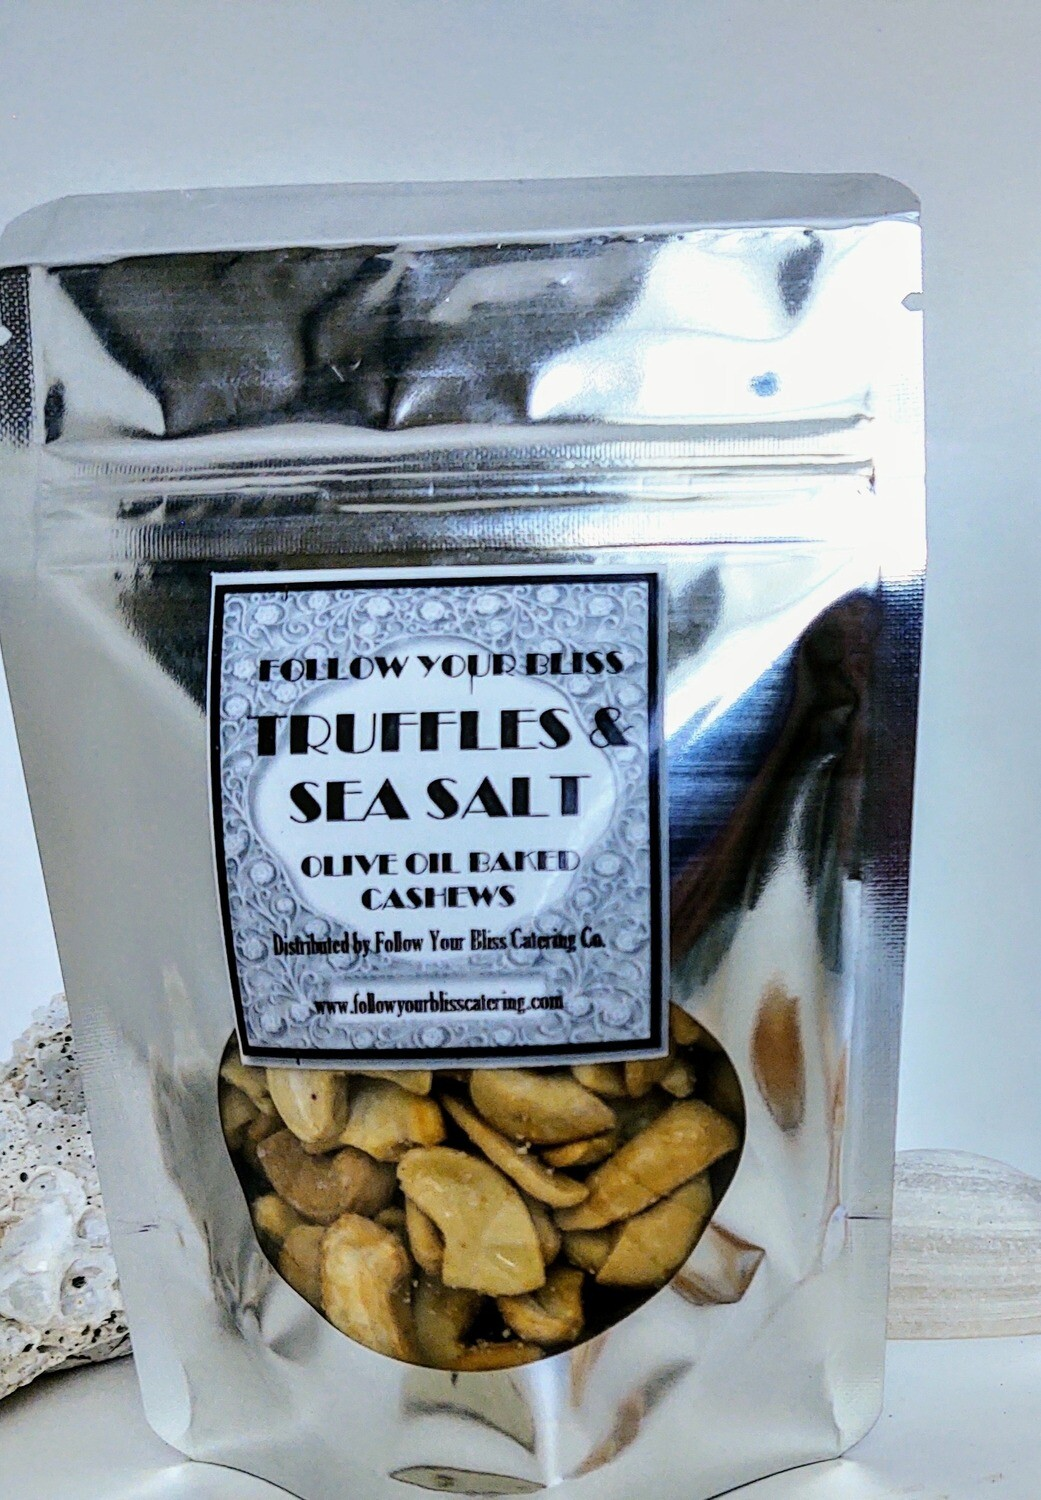 Truffle & Sea Salt Cashews 2oz